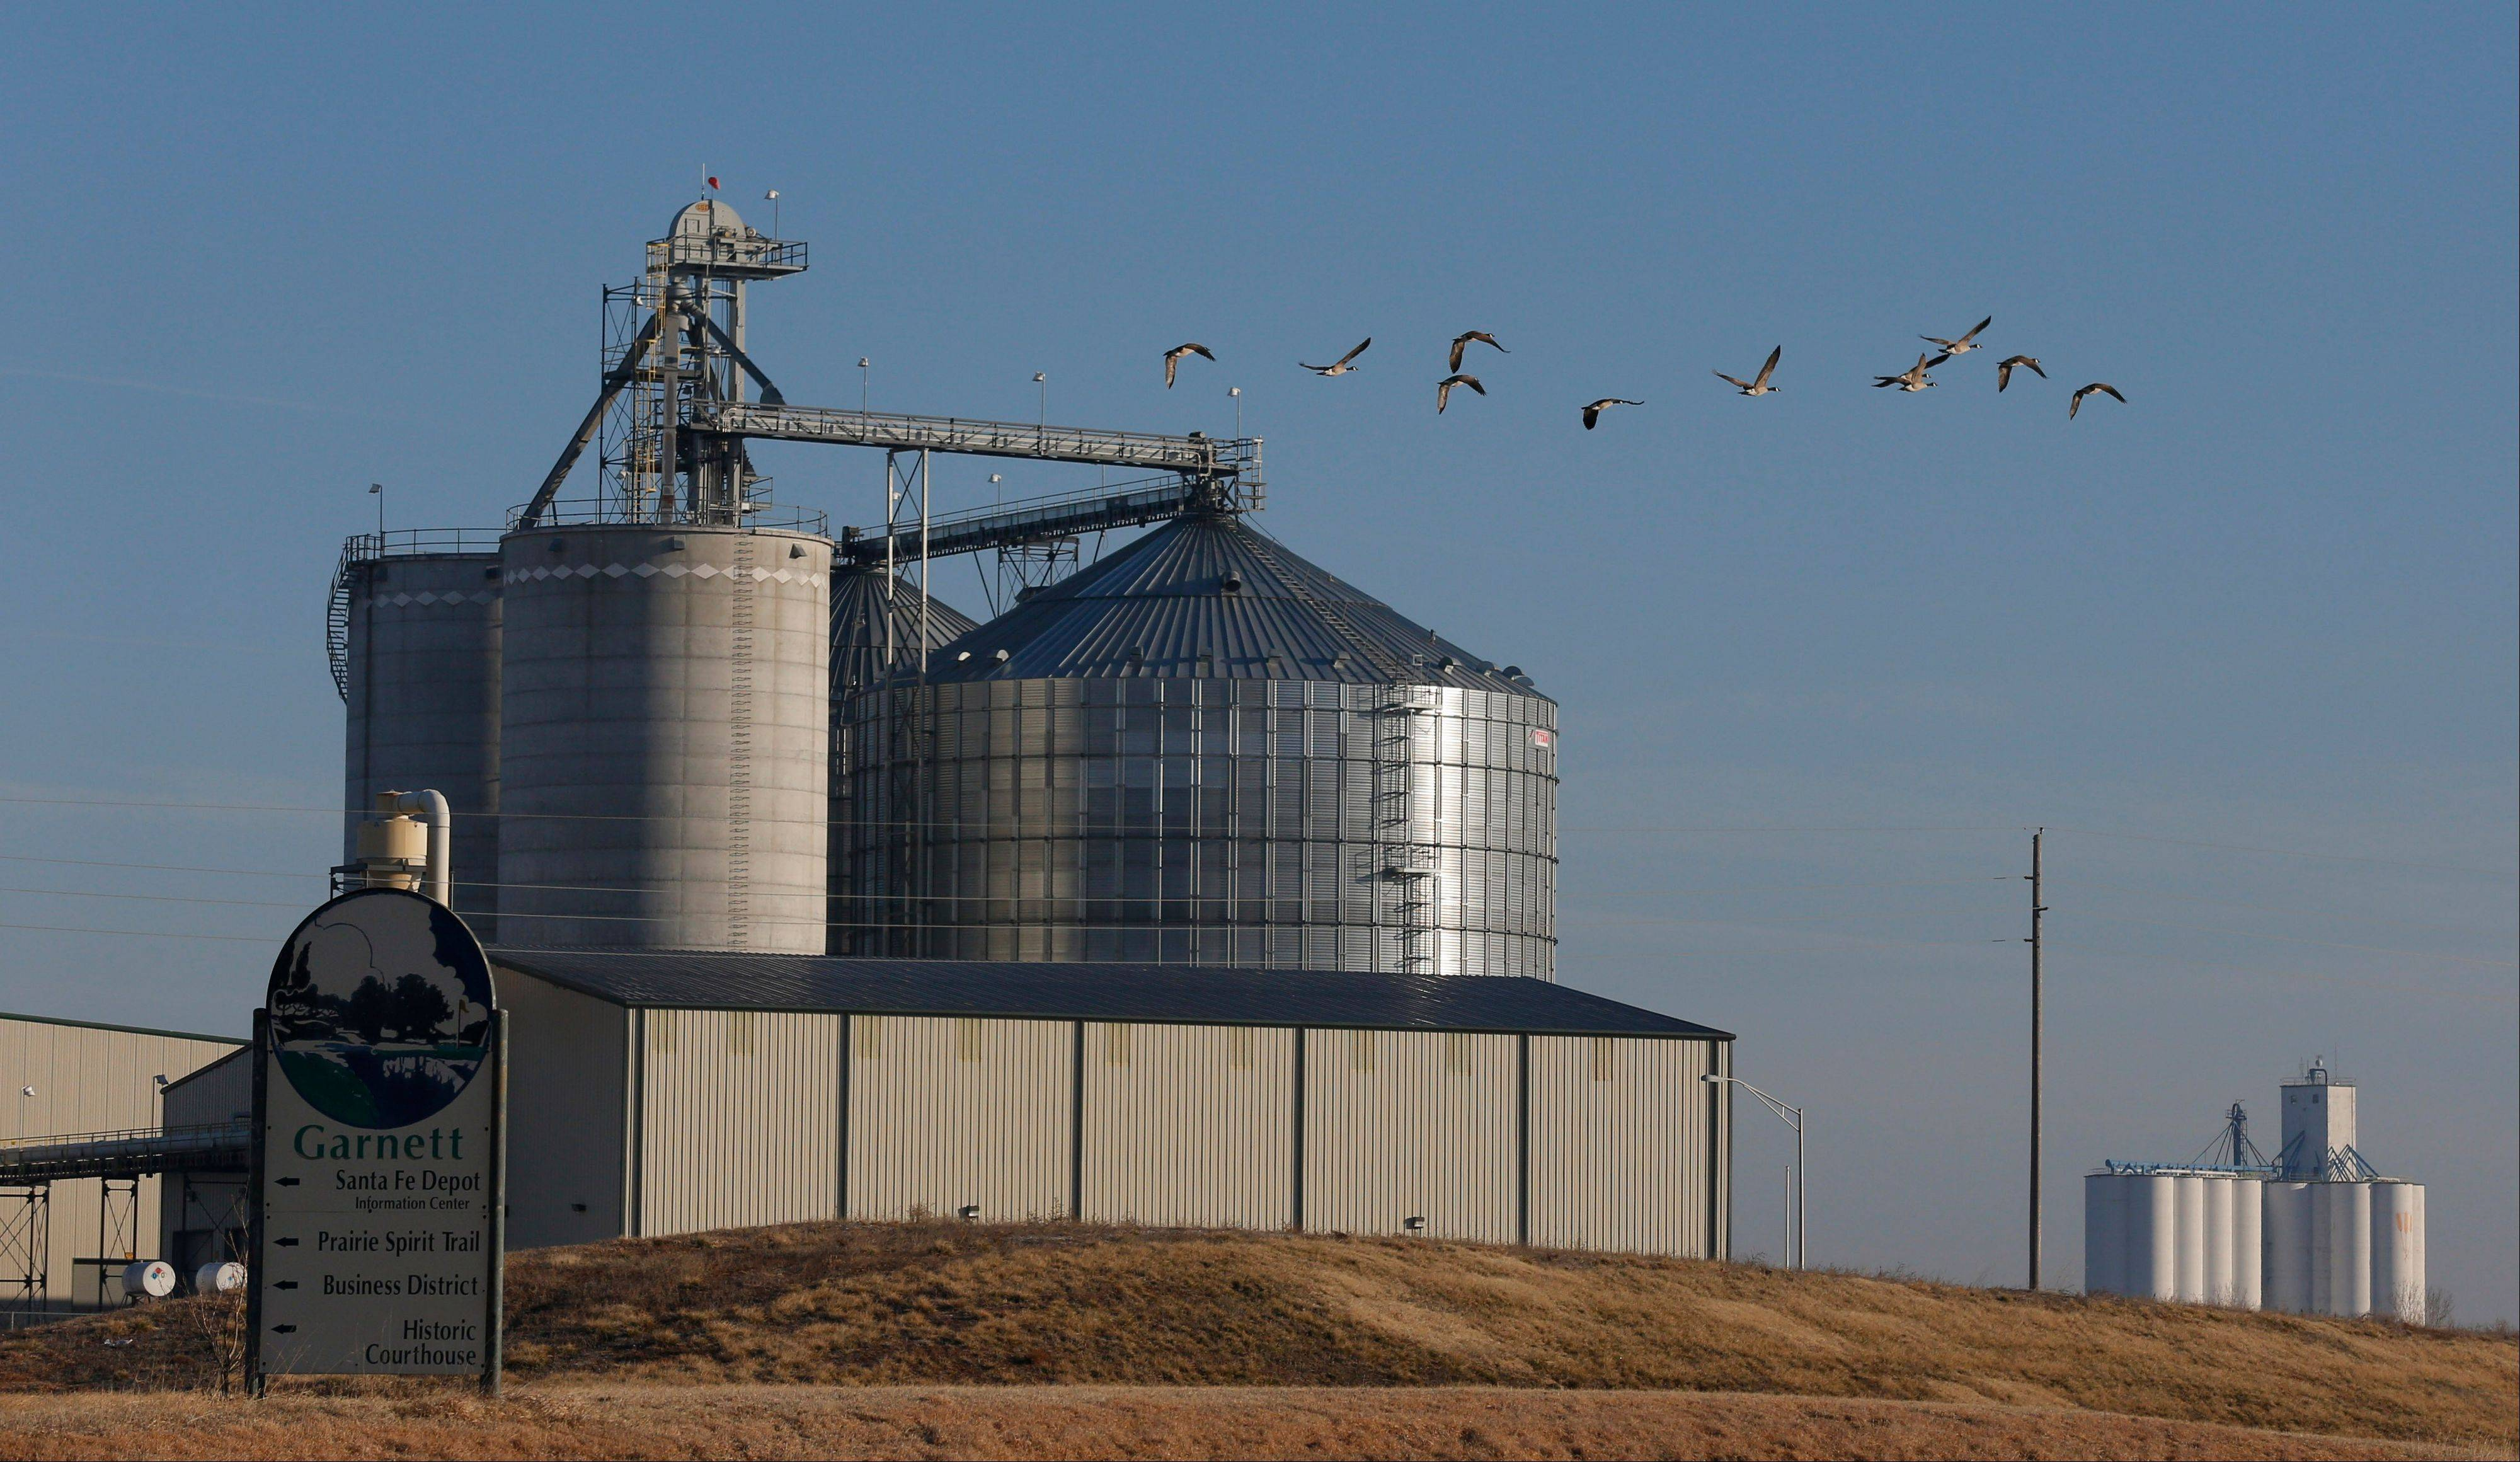 Geese fly by the East Kansas Agri-Energy ethanol plant in Garnett, Kan., that suspended production last year. Corn growers had high hopes going into the 2012 planting season but the drought that began last spring hit the corn crop hard. As a result, corn prices skyrocketed and corn has become scarce in some regions, forcing 20 ethanol plants around the country to halt production.